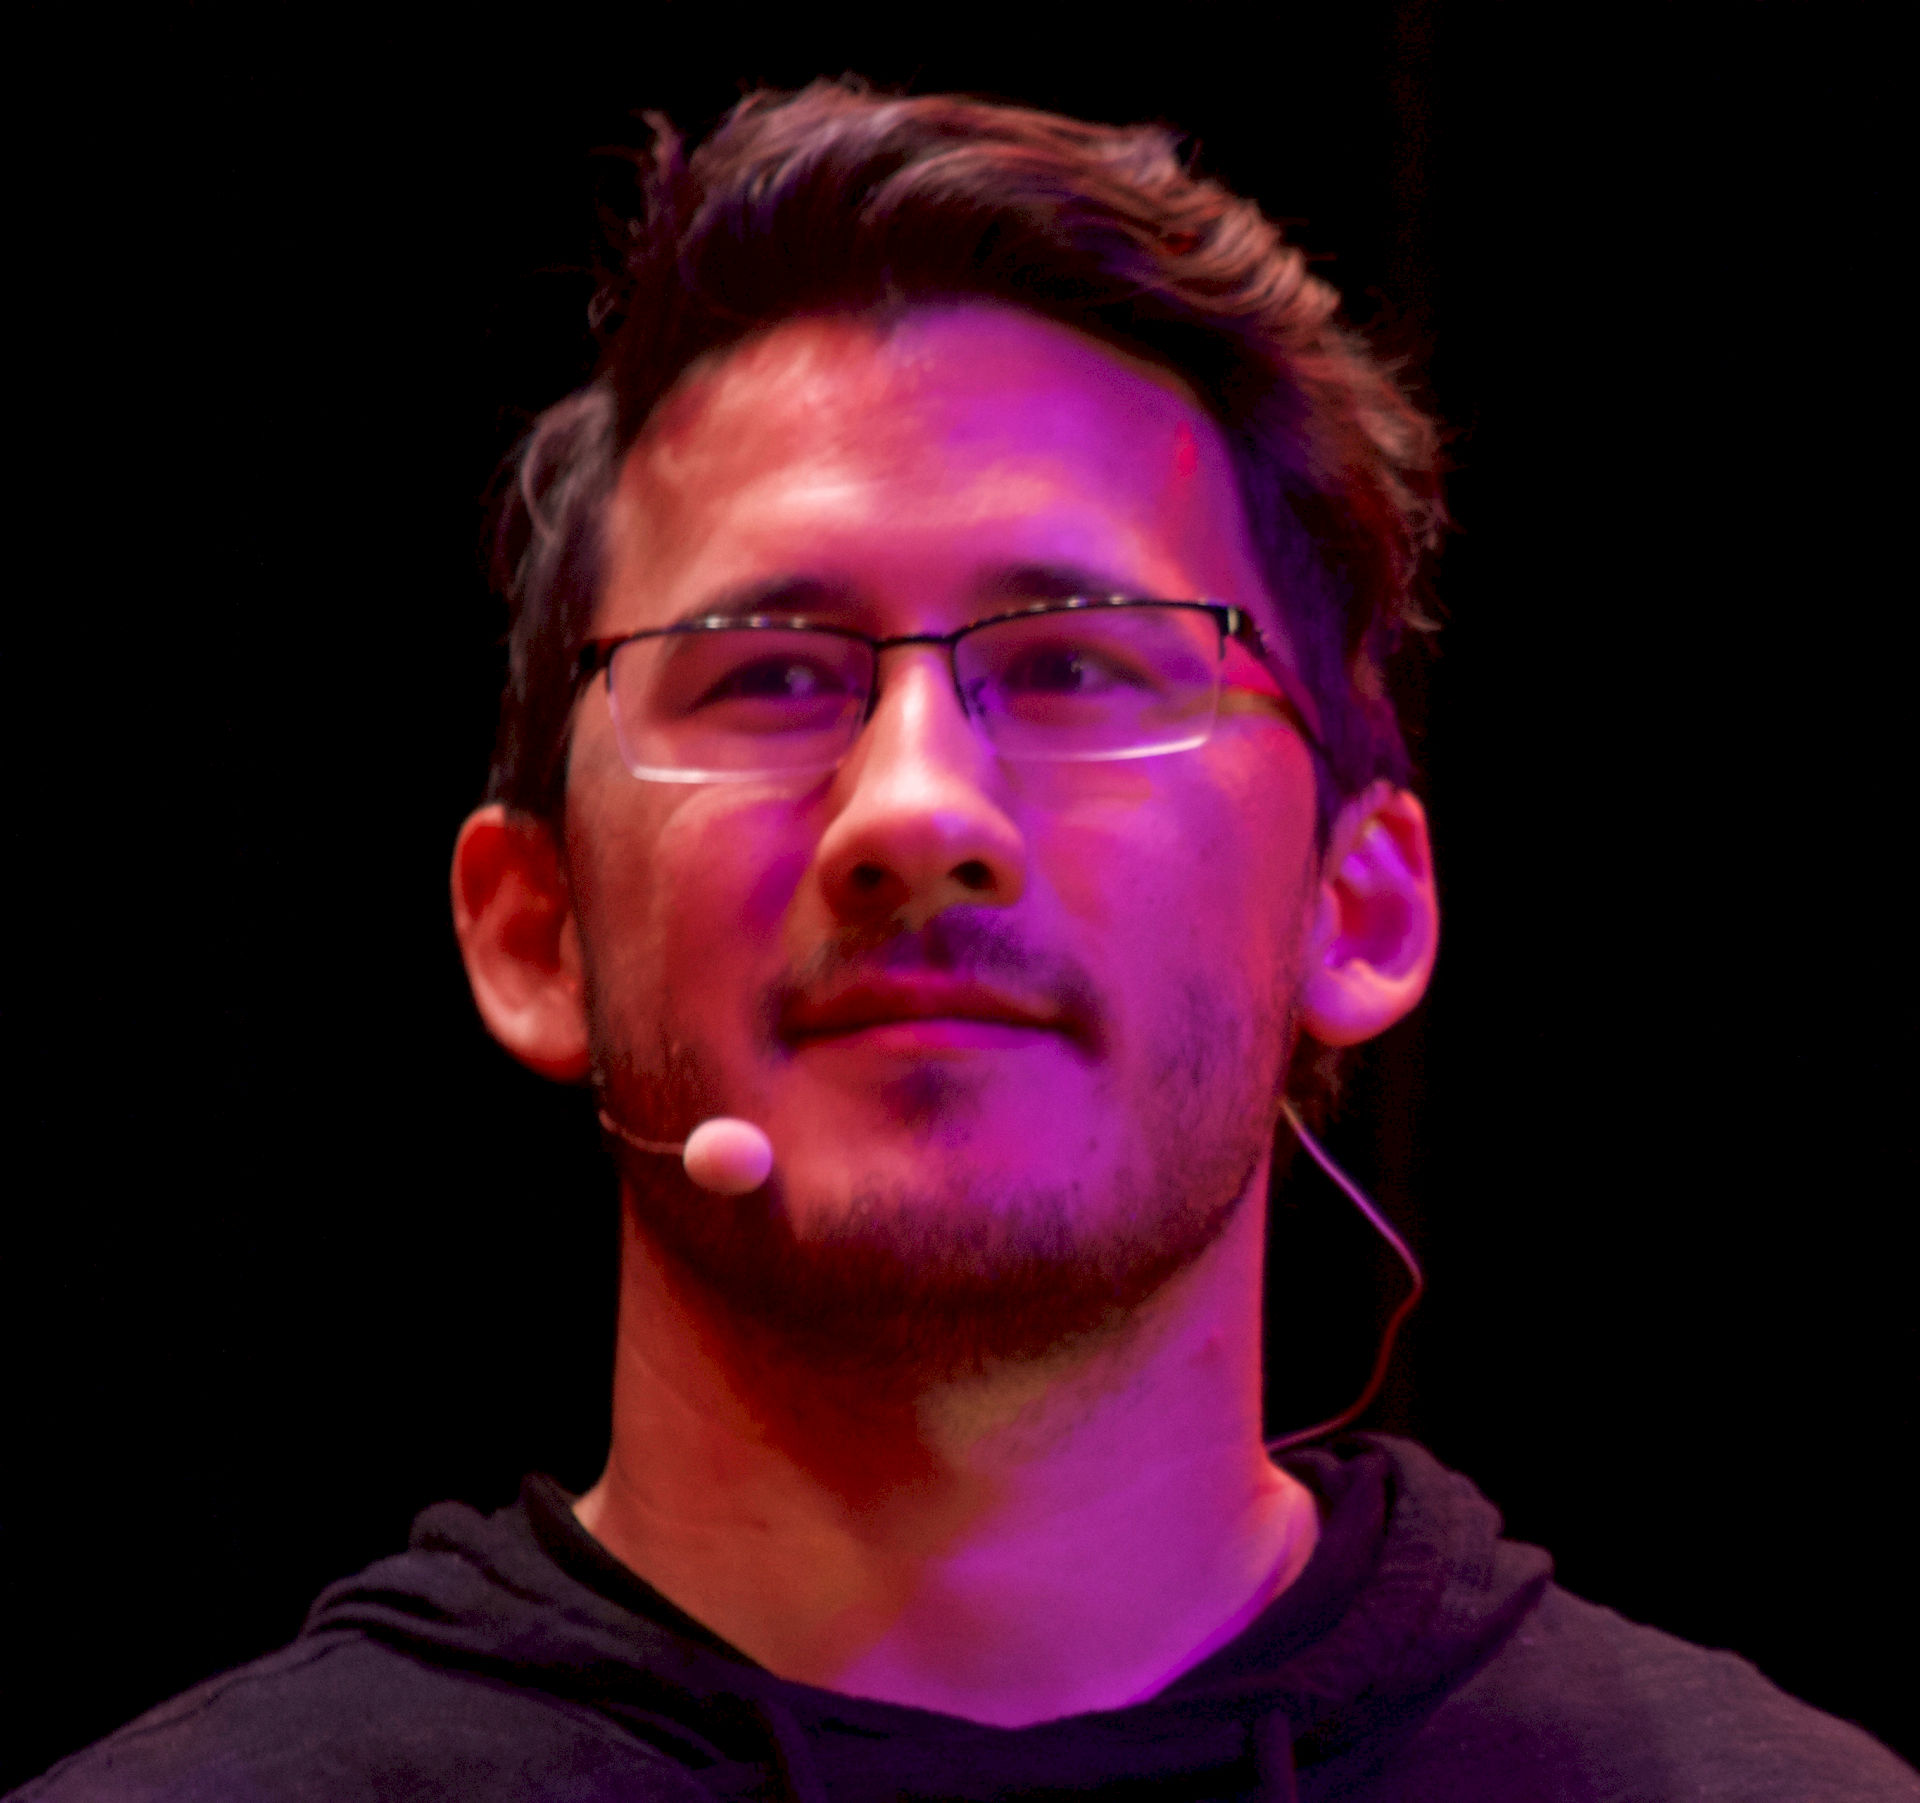 Photo of Markiplier: American Youtuber and internet personality